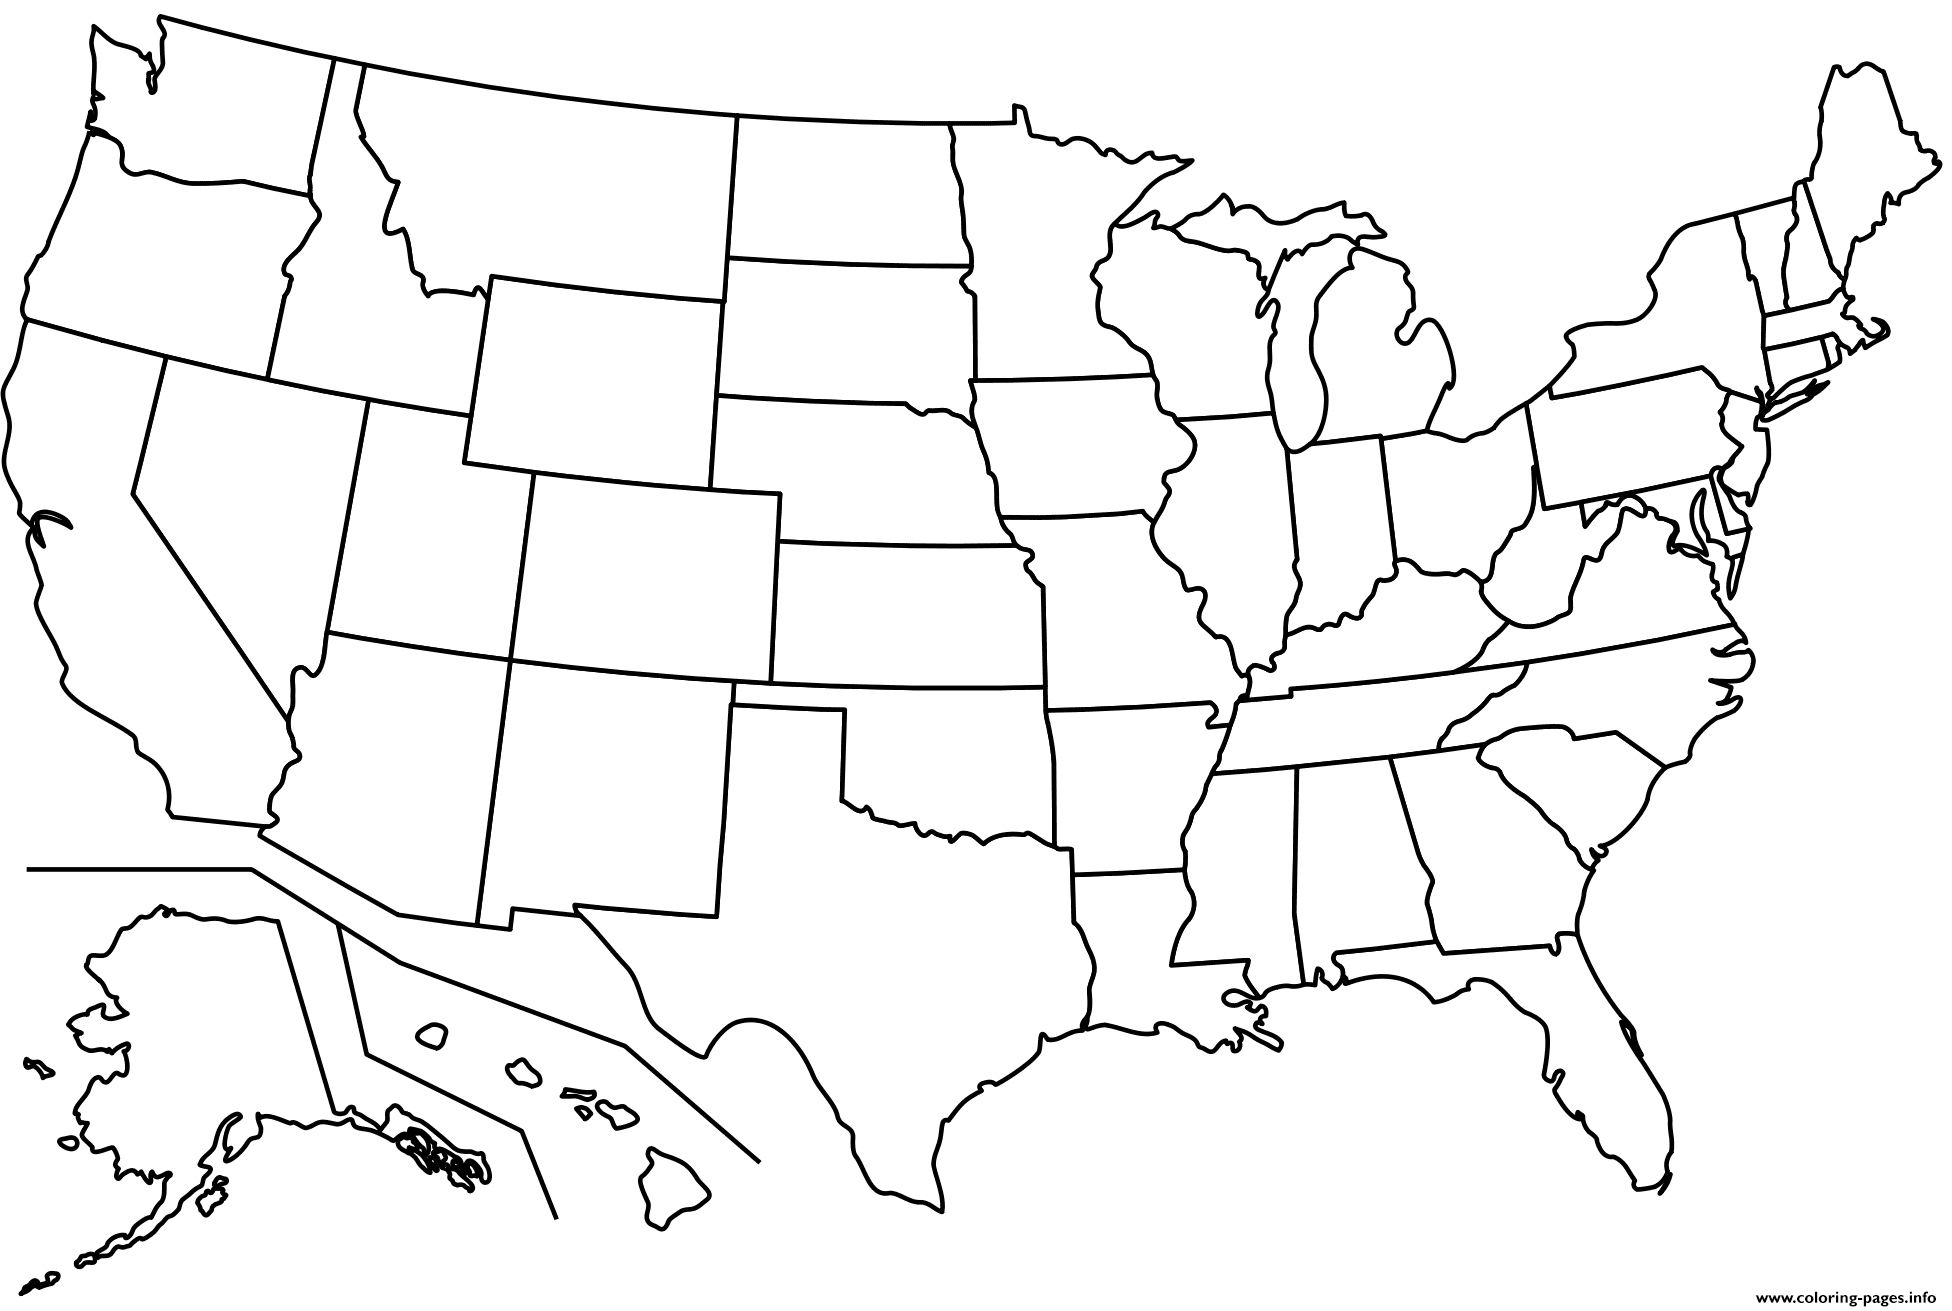 Outline Map Of Us States Coloring Pages Printable